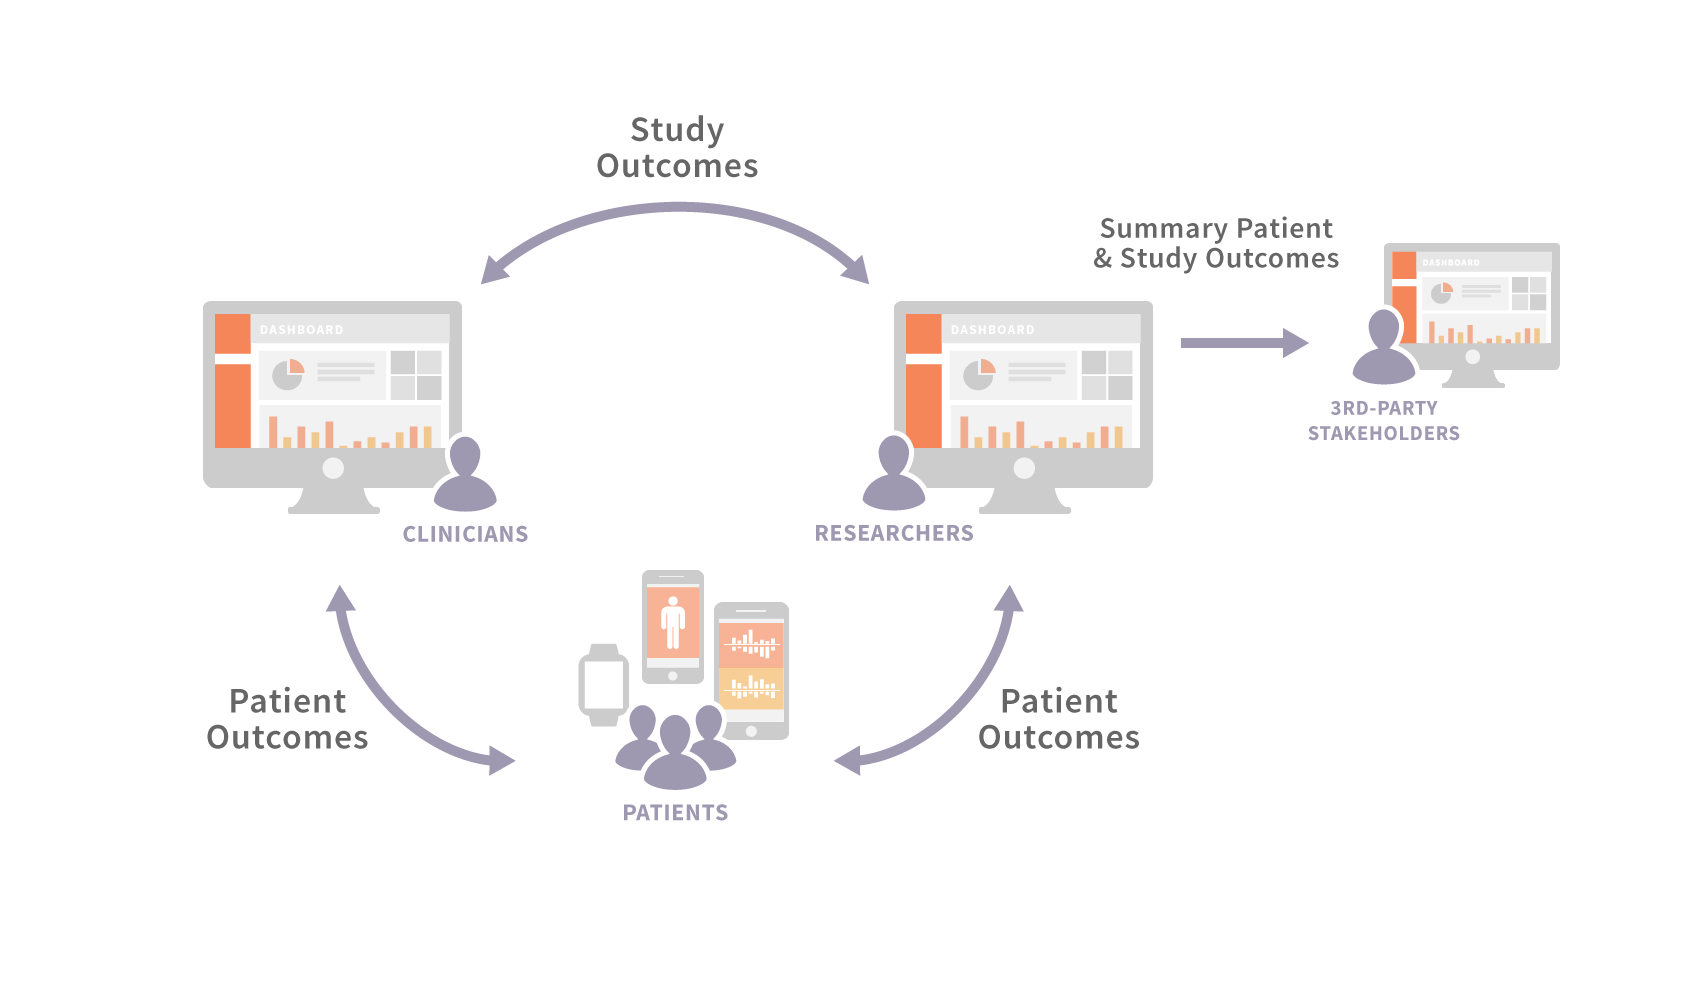 Building upon the core modules of ResearchKit improves patient accessibility and recruitment capability while enabling a wealth of new research possibilities as more and new types of data can be gathered on a real-time basis.